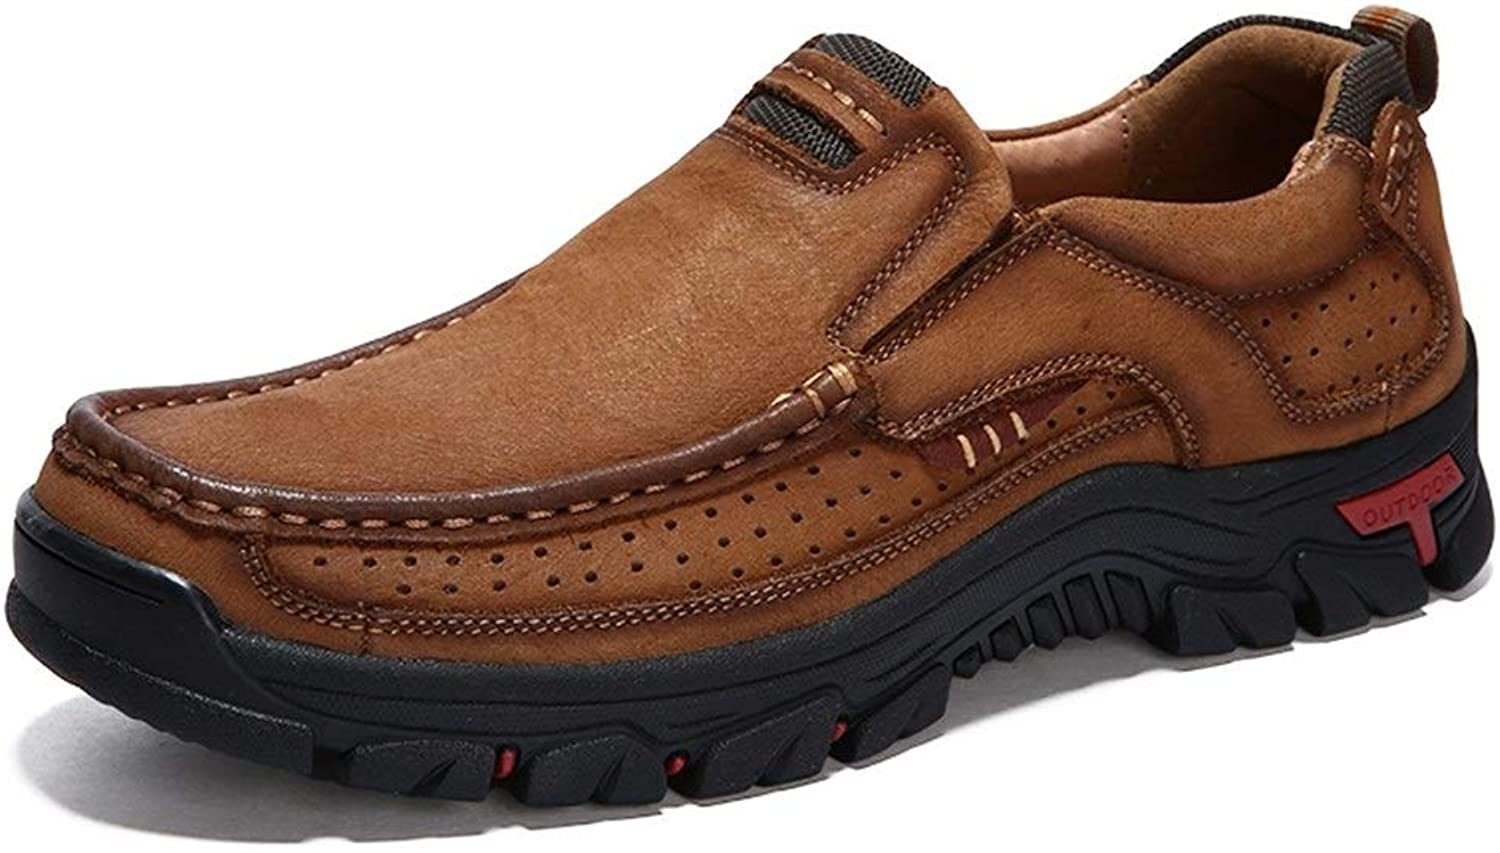 Easy Go Shopping Oxford shoes Mens Formal shoes Slip On Style OX Leather Comfortable Low-top Breathable Outsole Simple Solid color Cricket shoes (color   Light Brown, Size   9.5 UK)